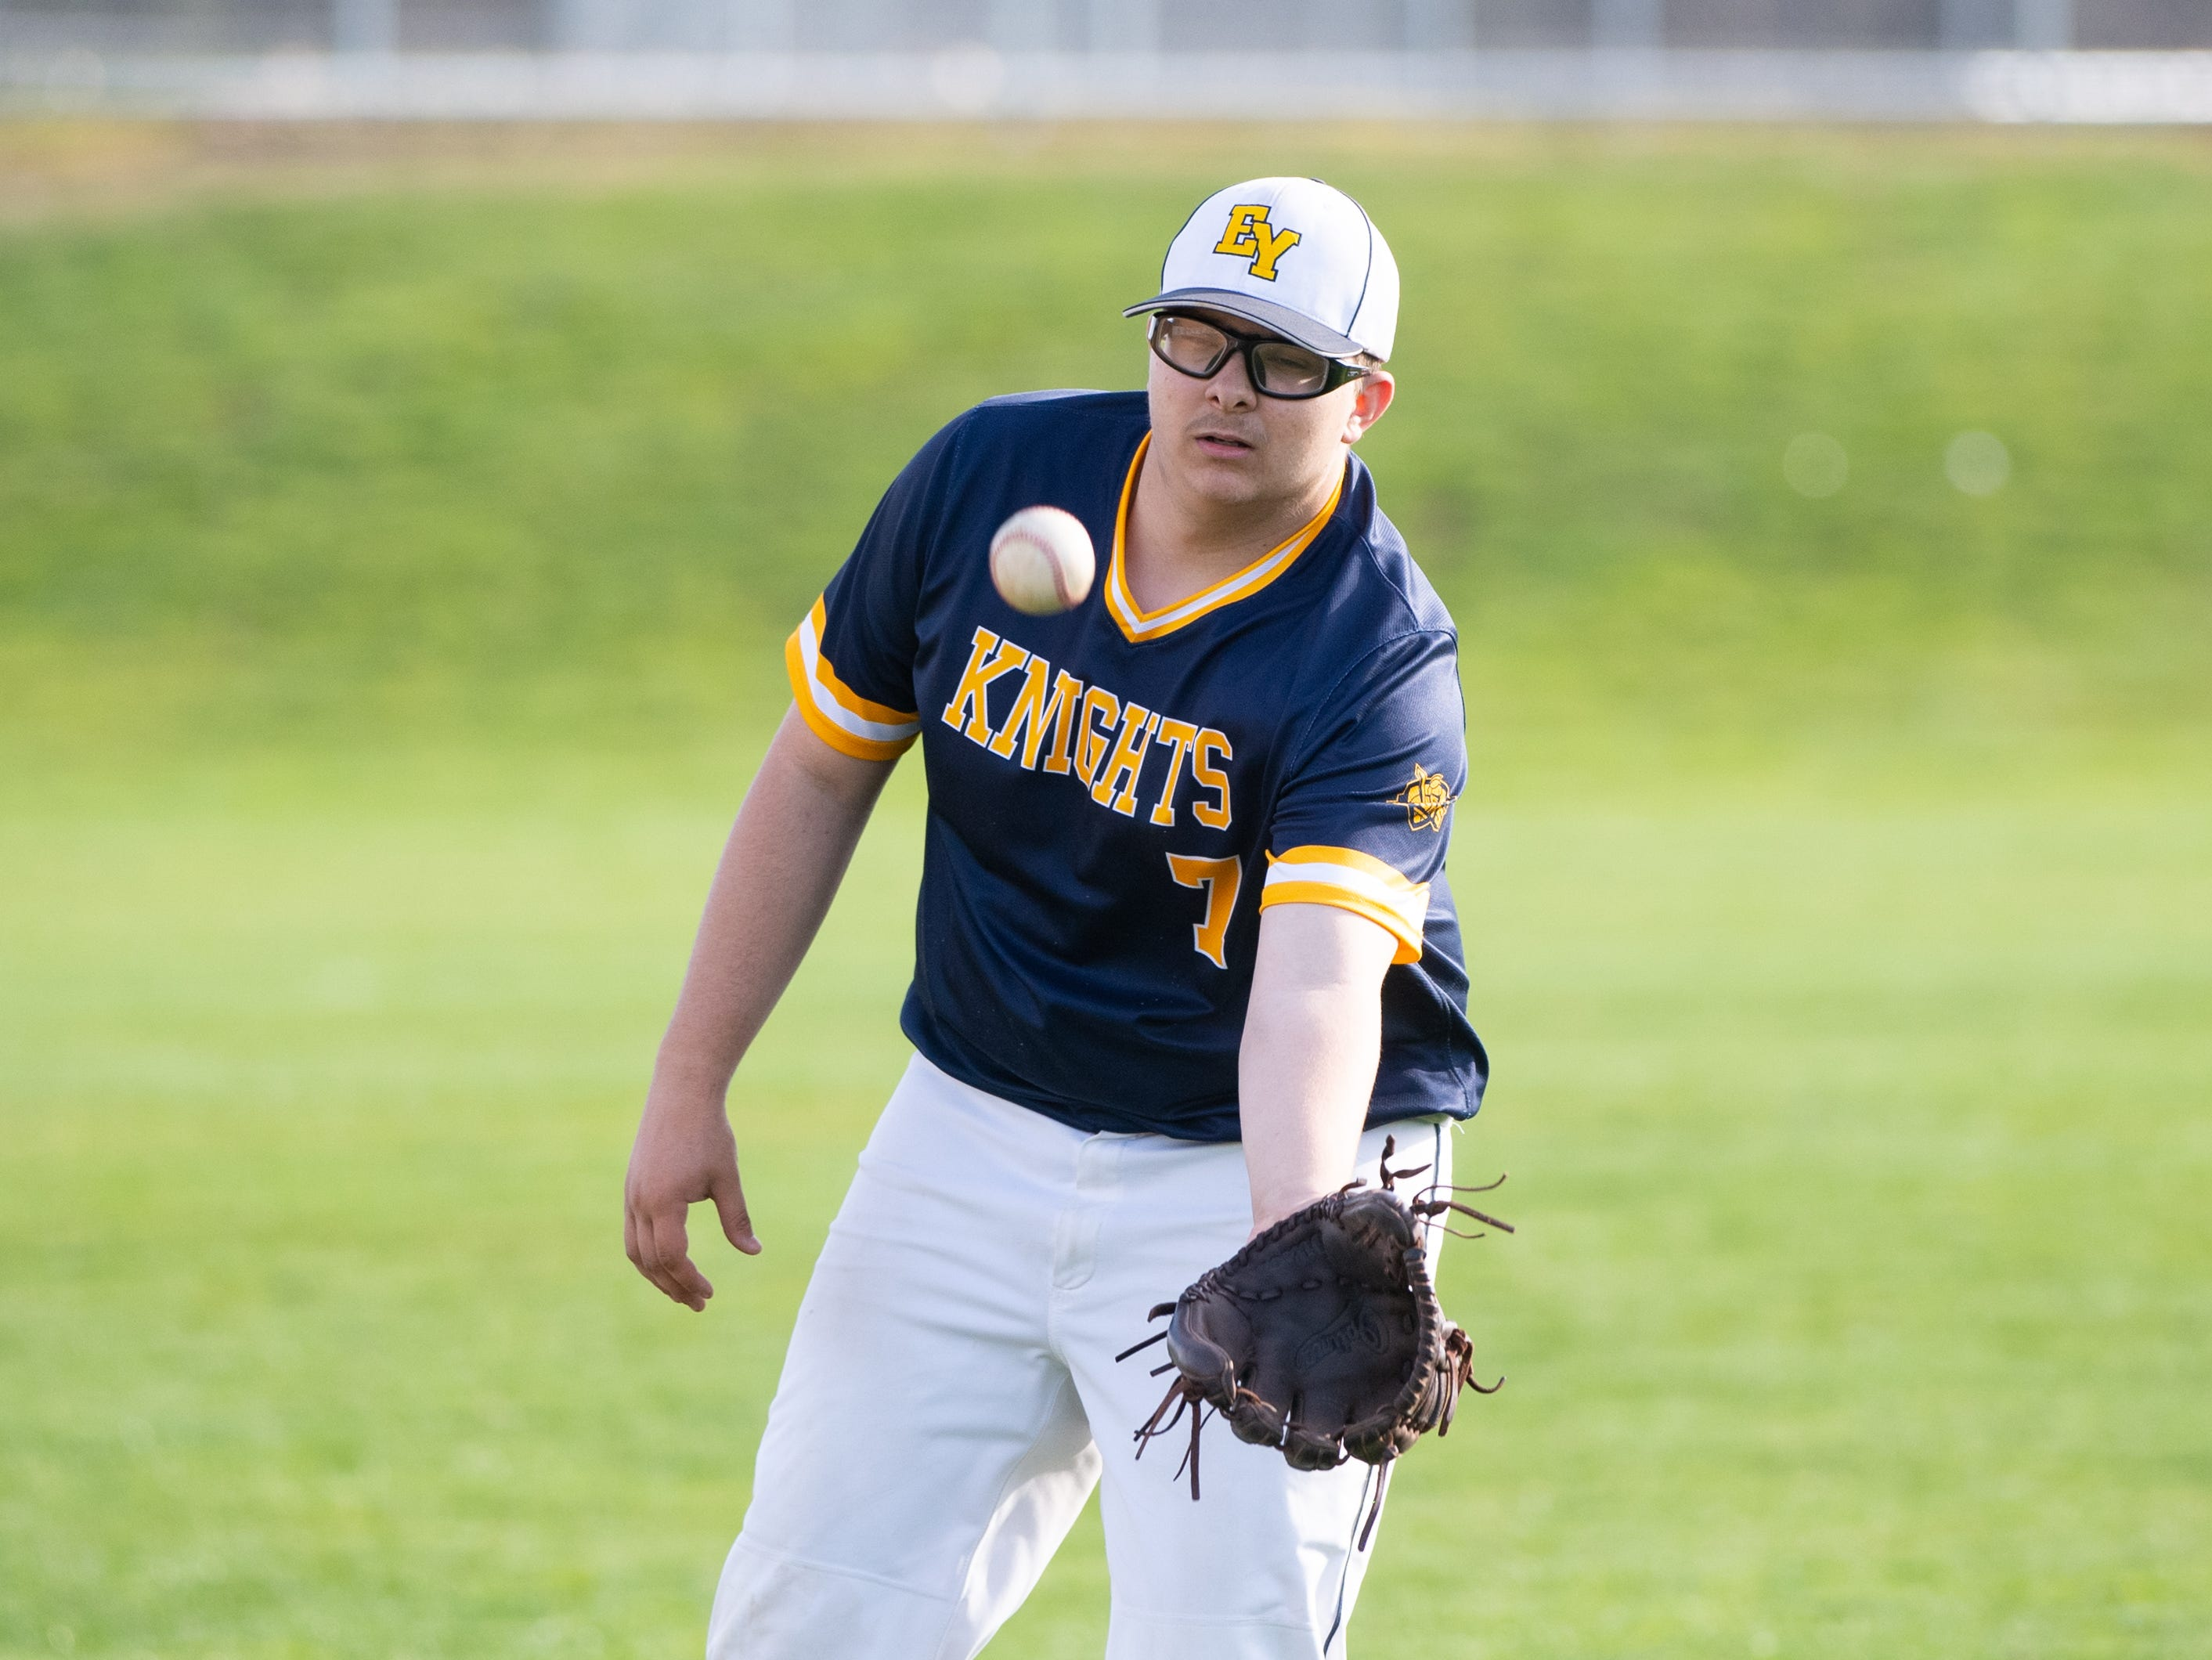 Quinton McNew (7) catches a fly ball during the baseball game between Eastern York and Kennard-Dale, April 10, 2019 at Eastern York High School. The Golden Knights defeated the Rams 8 to 1.